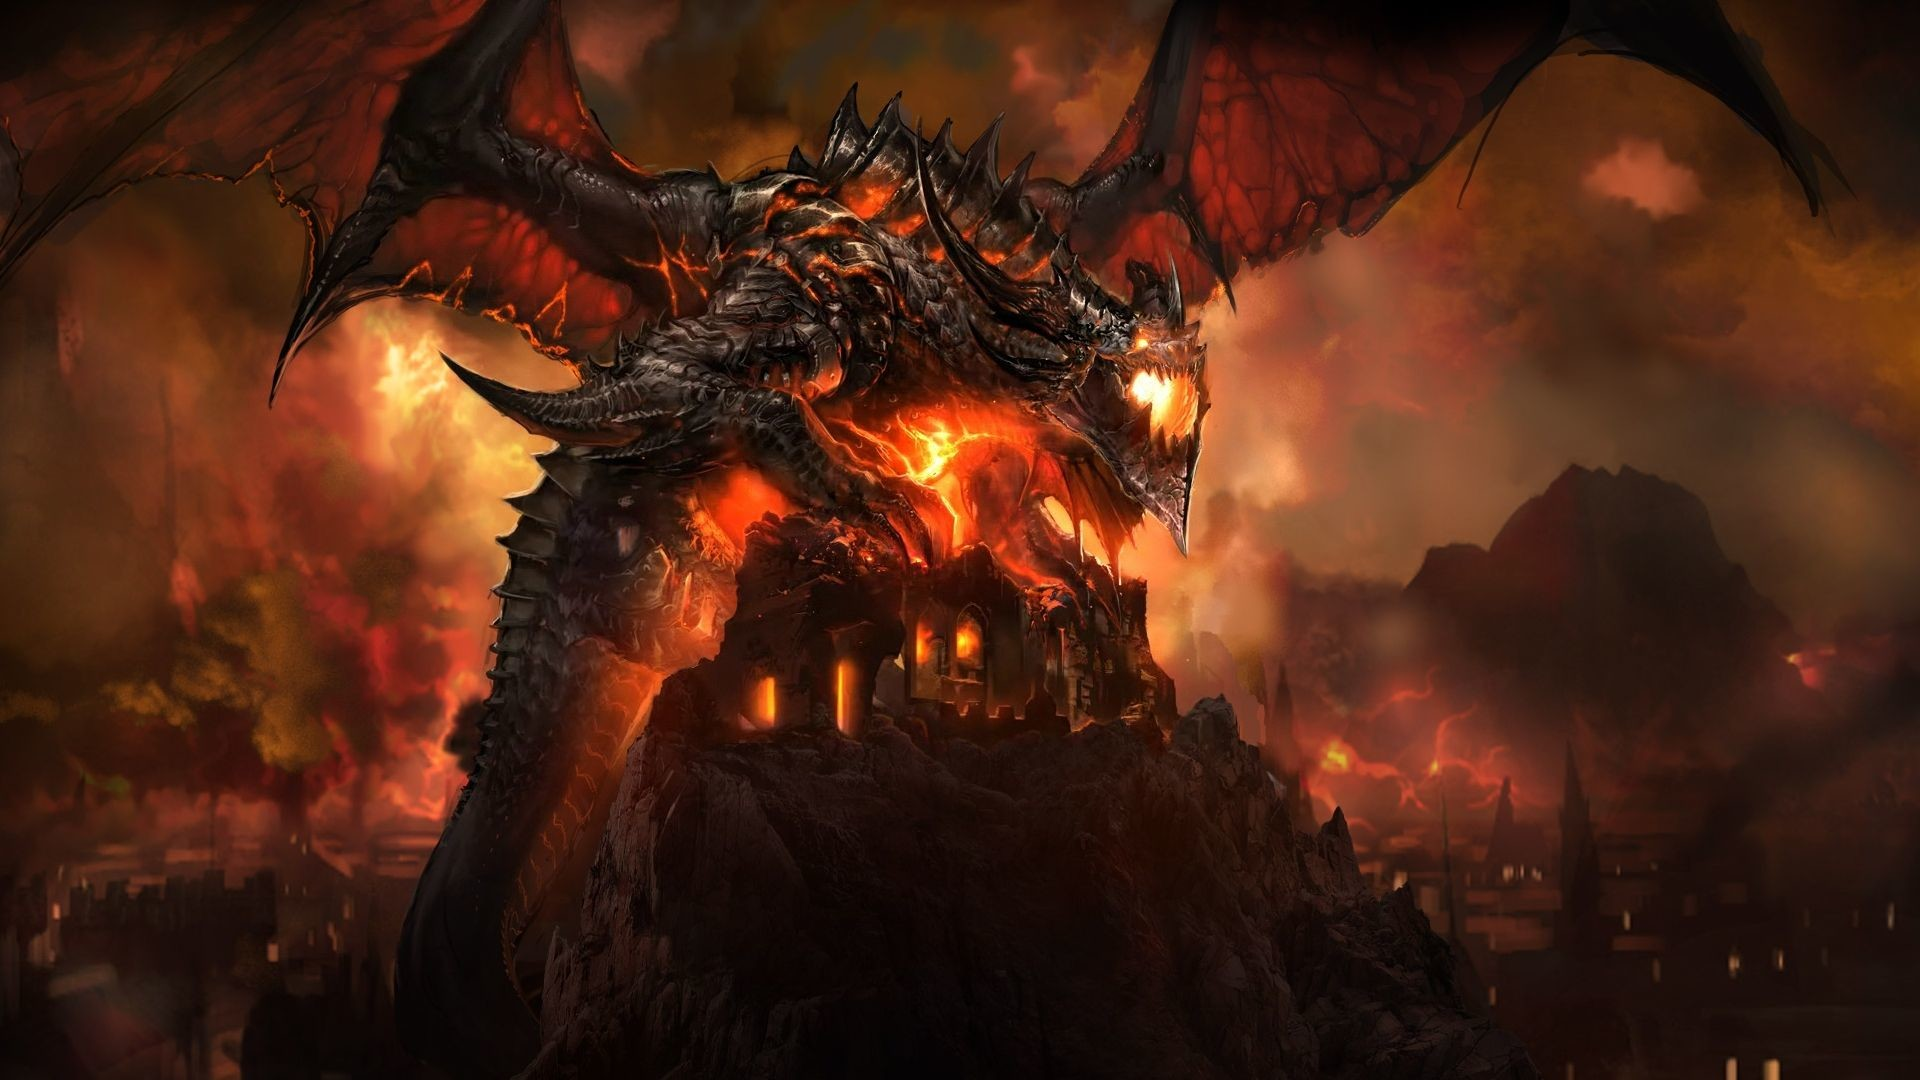 cool wallpapers of dragons 68 images